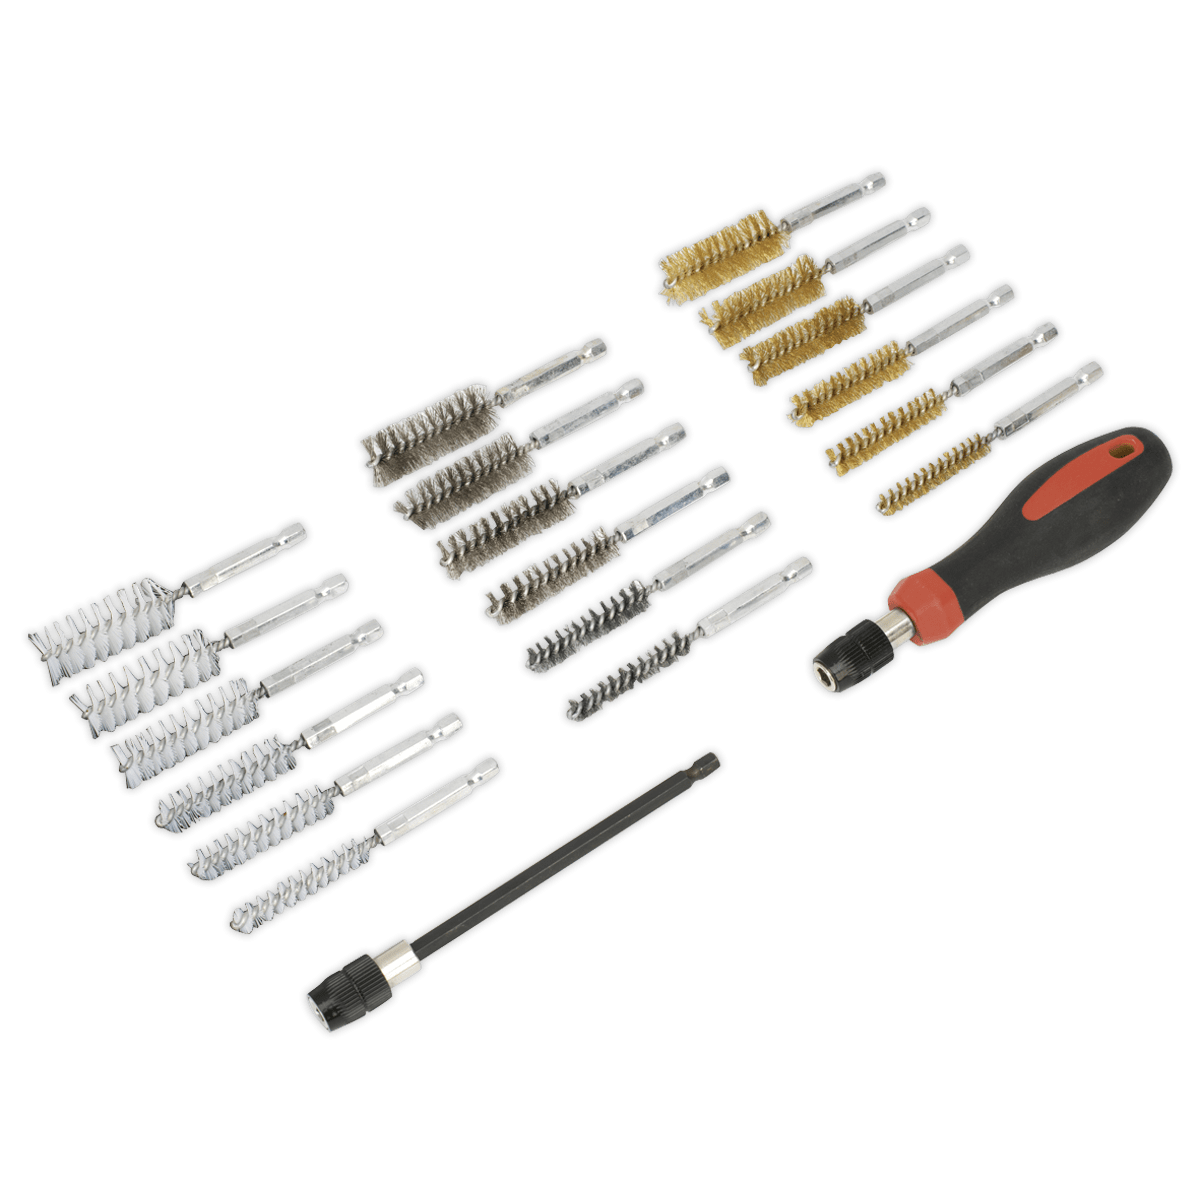 Sealey Vs Cleaning Amp Decarbonising Brush Set 20pc